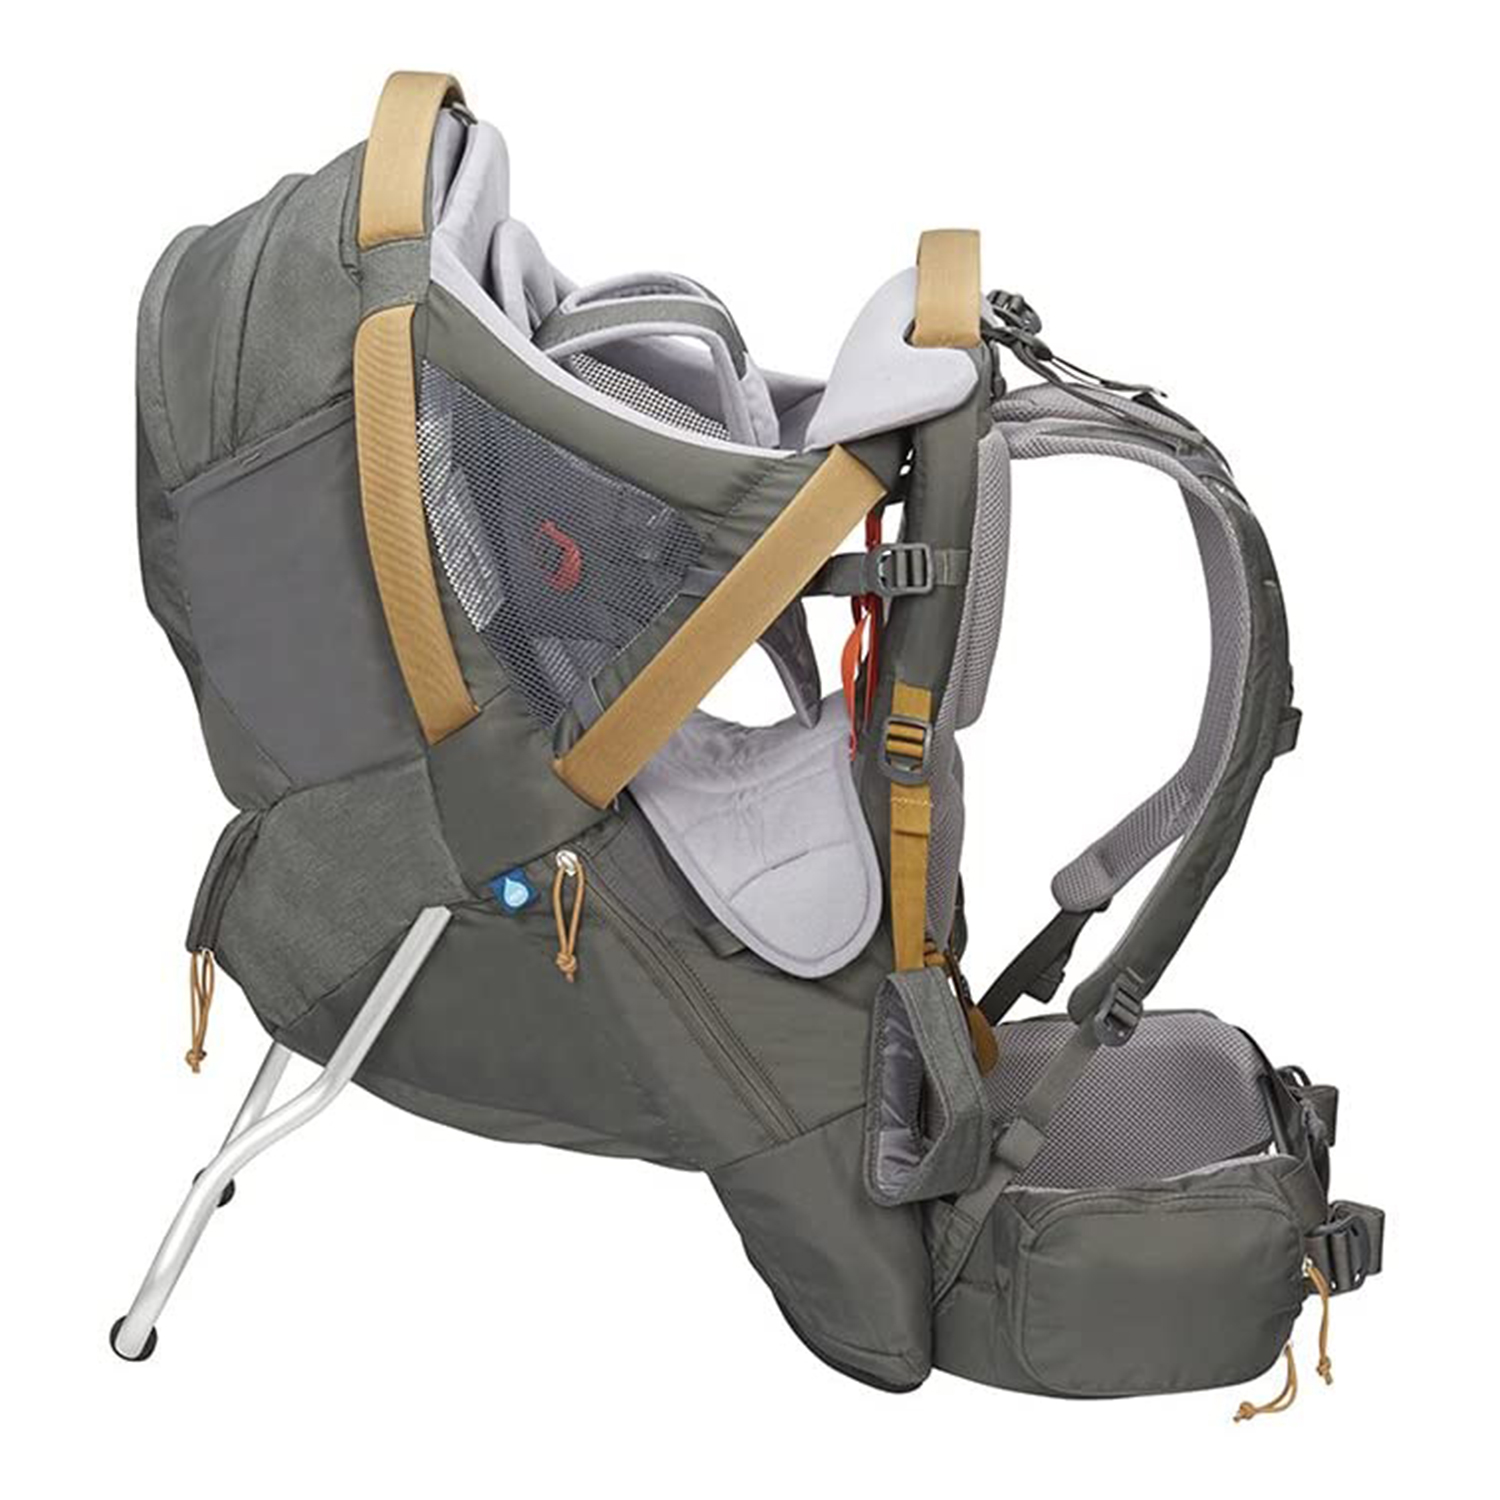 Best Overall Hiking Baby Carrier: Kelty Journey PerfectFit Elite